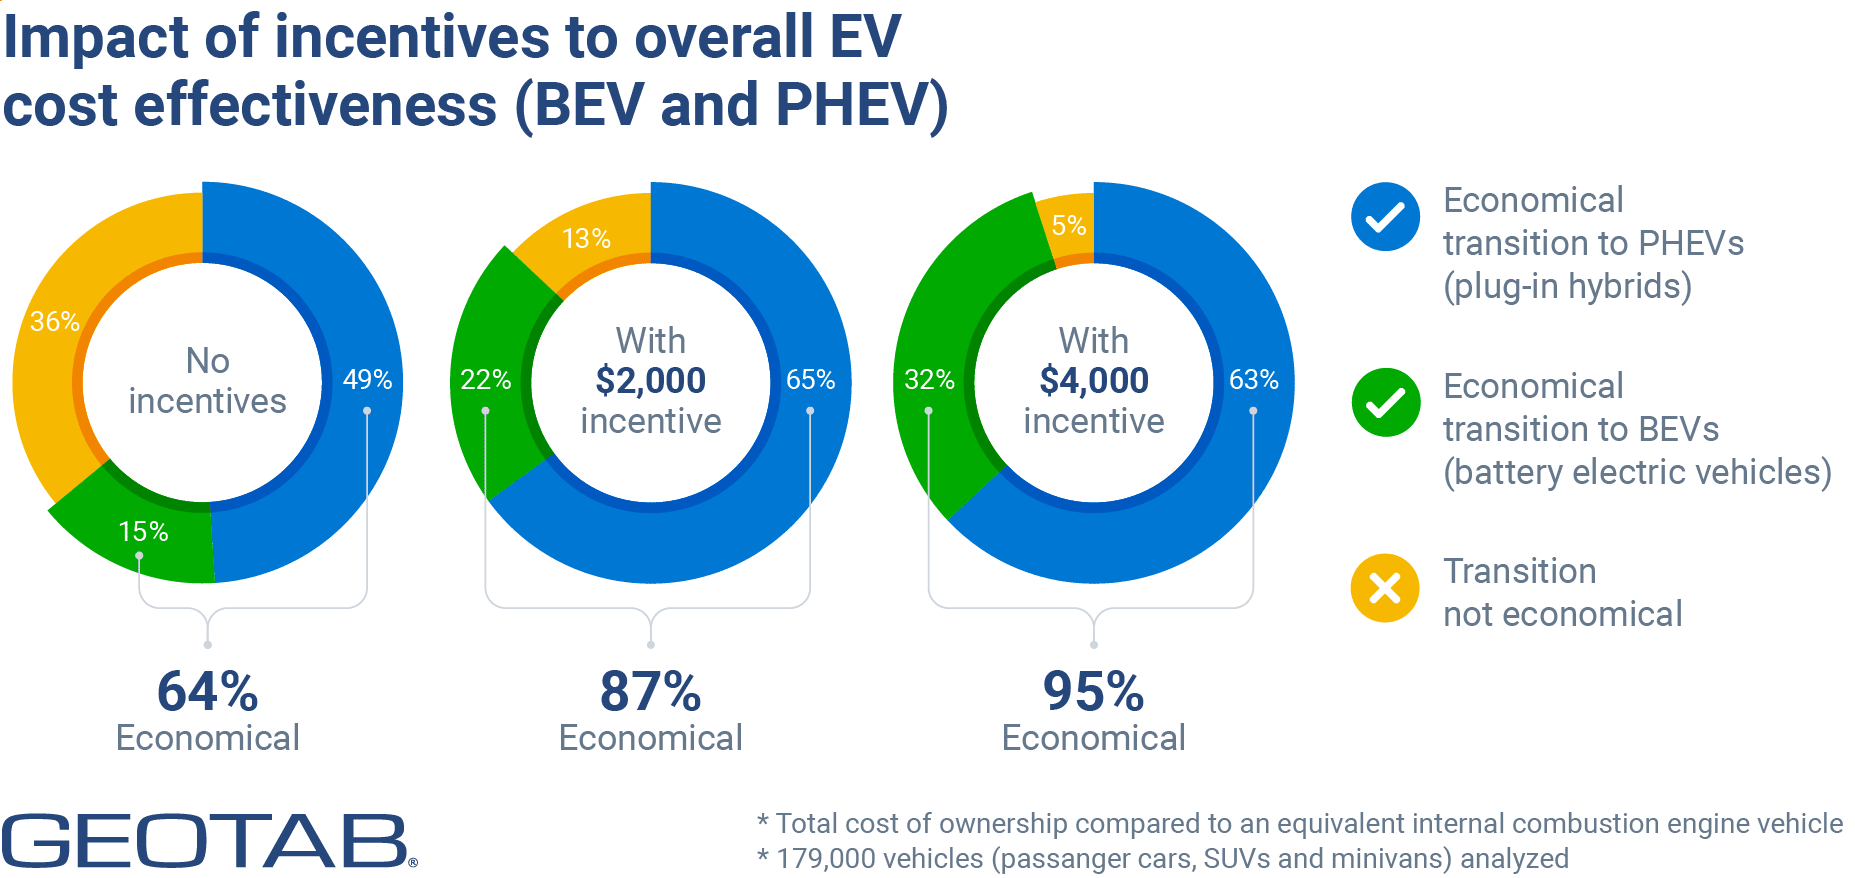 Impact of incentives to overall EV cost effectiveness